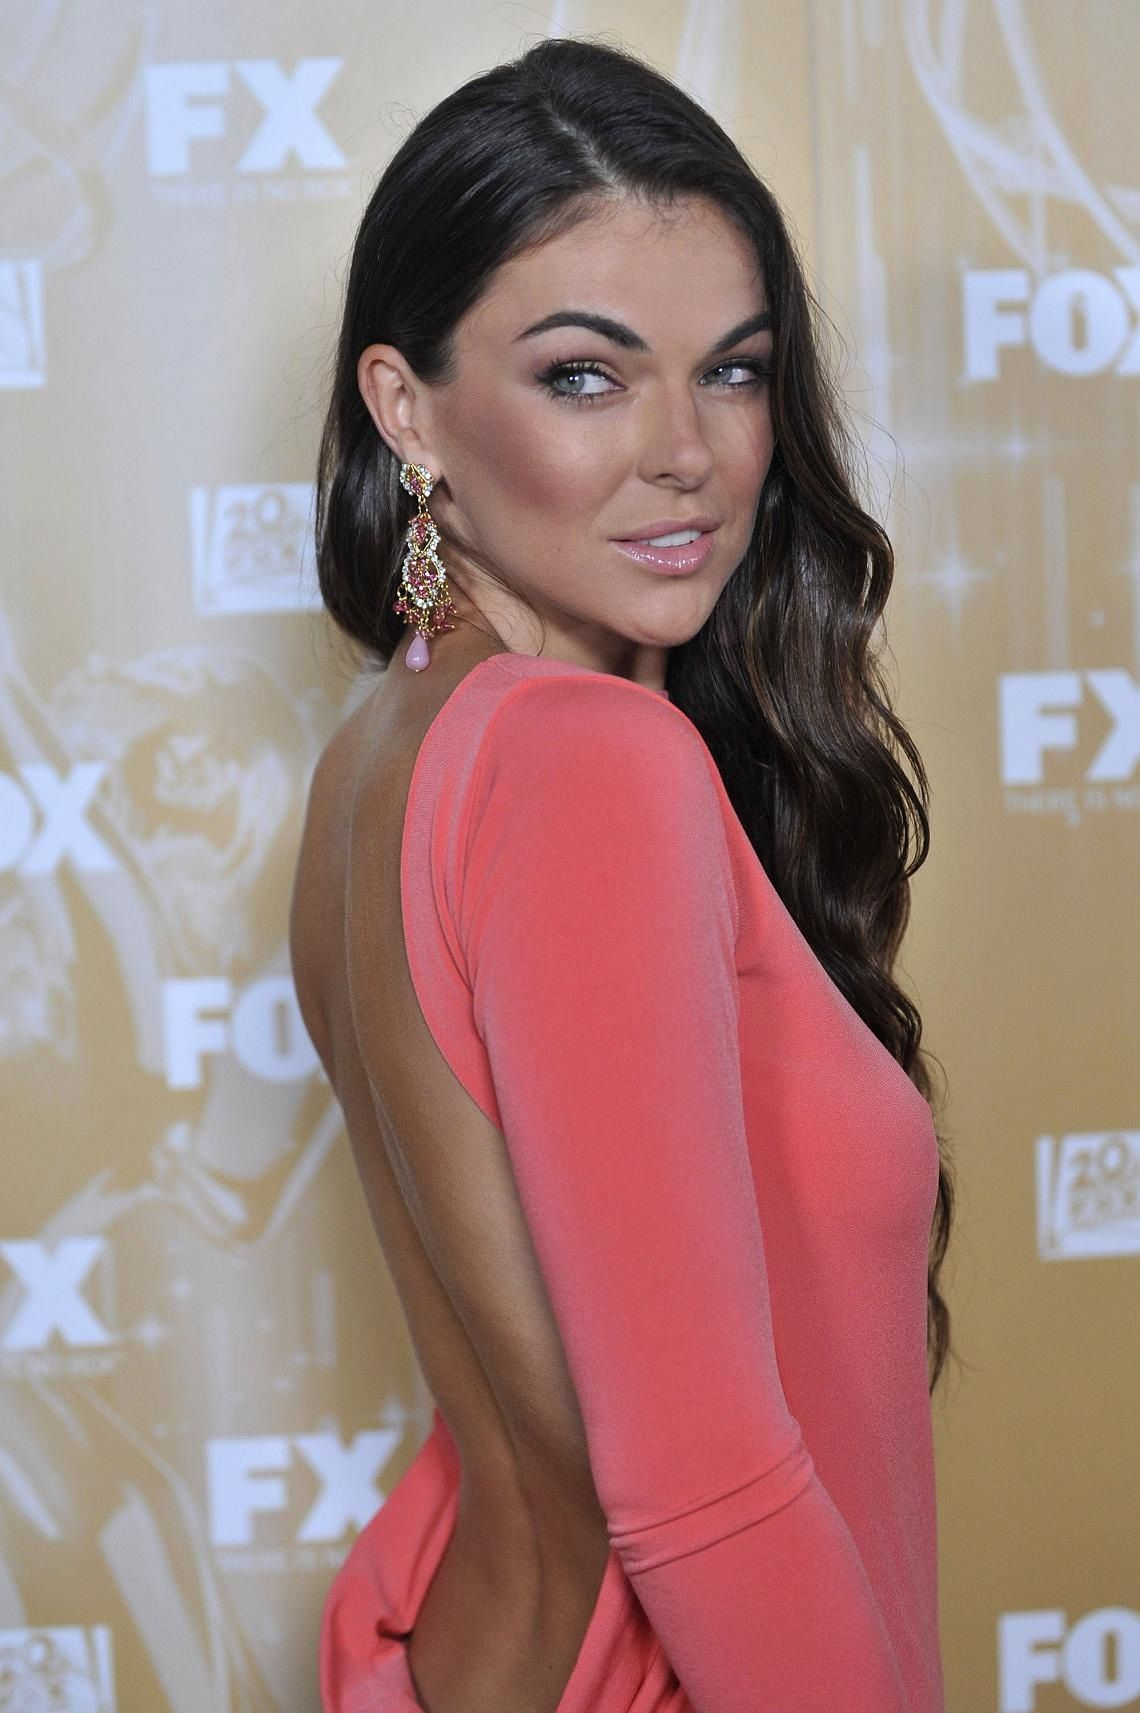 Celebrites Serinda Swan nudes (72 foto and video), Topless, Leaked, Selfie, bra 2018